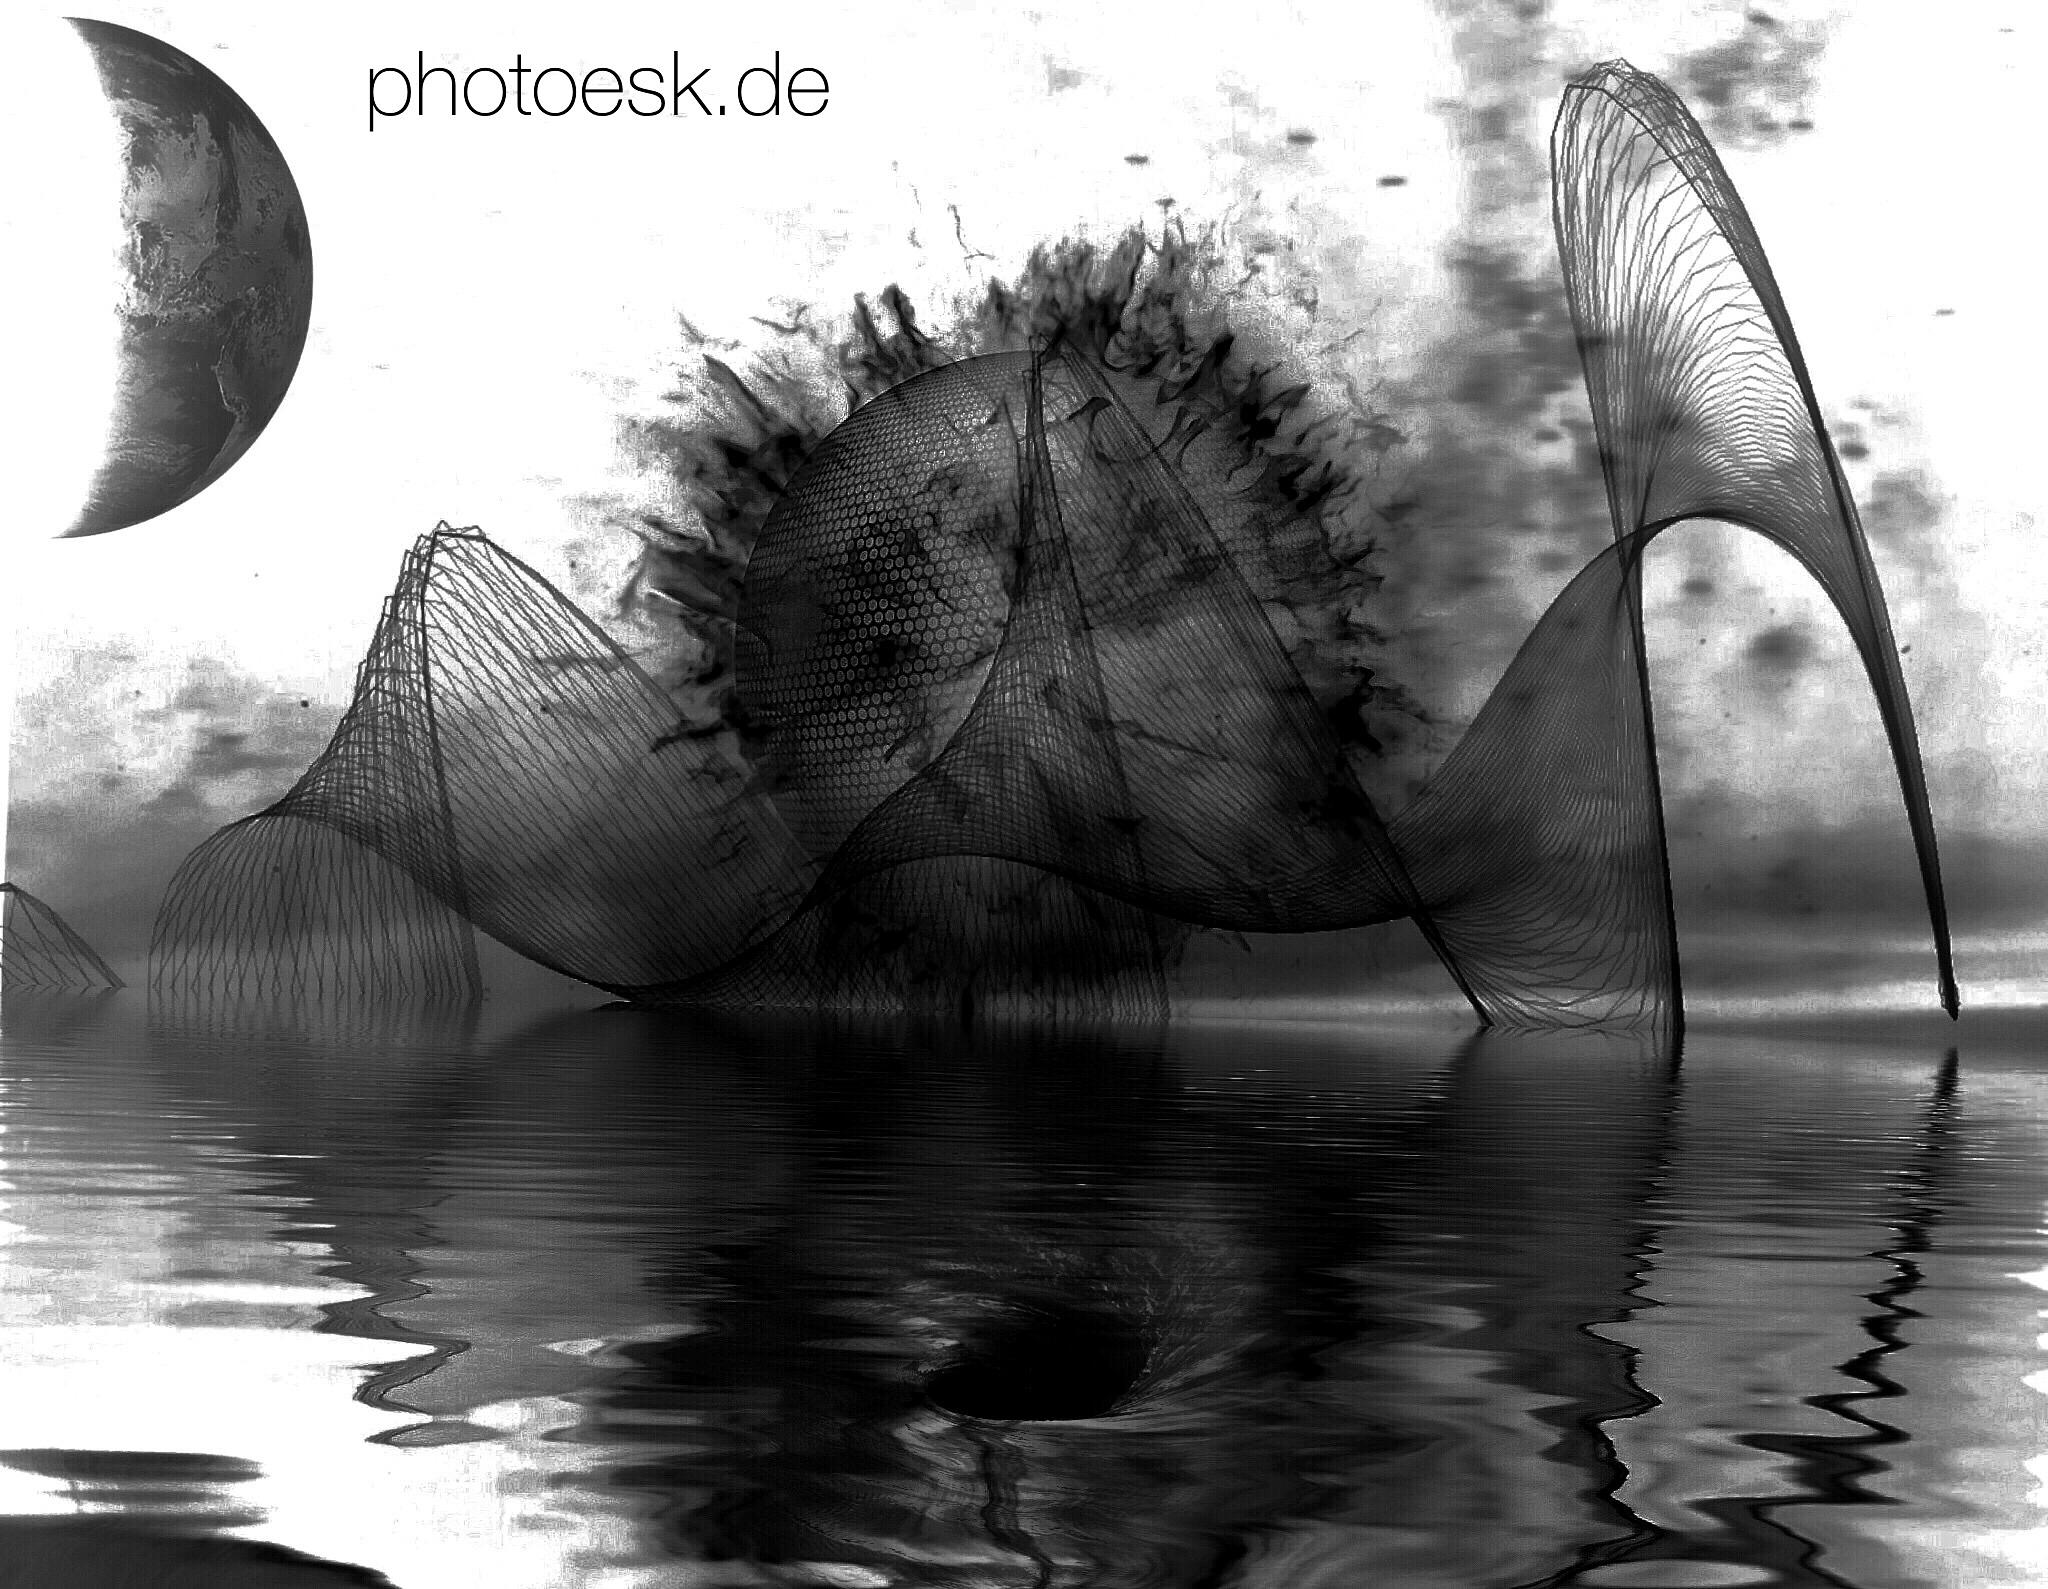 Fourtyseven by photoesk - just Art